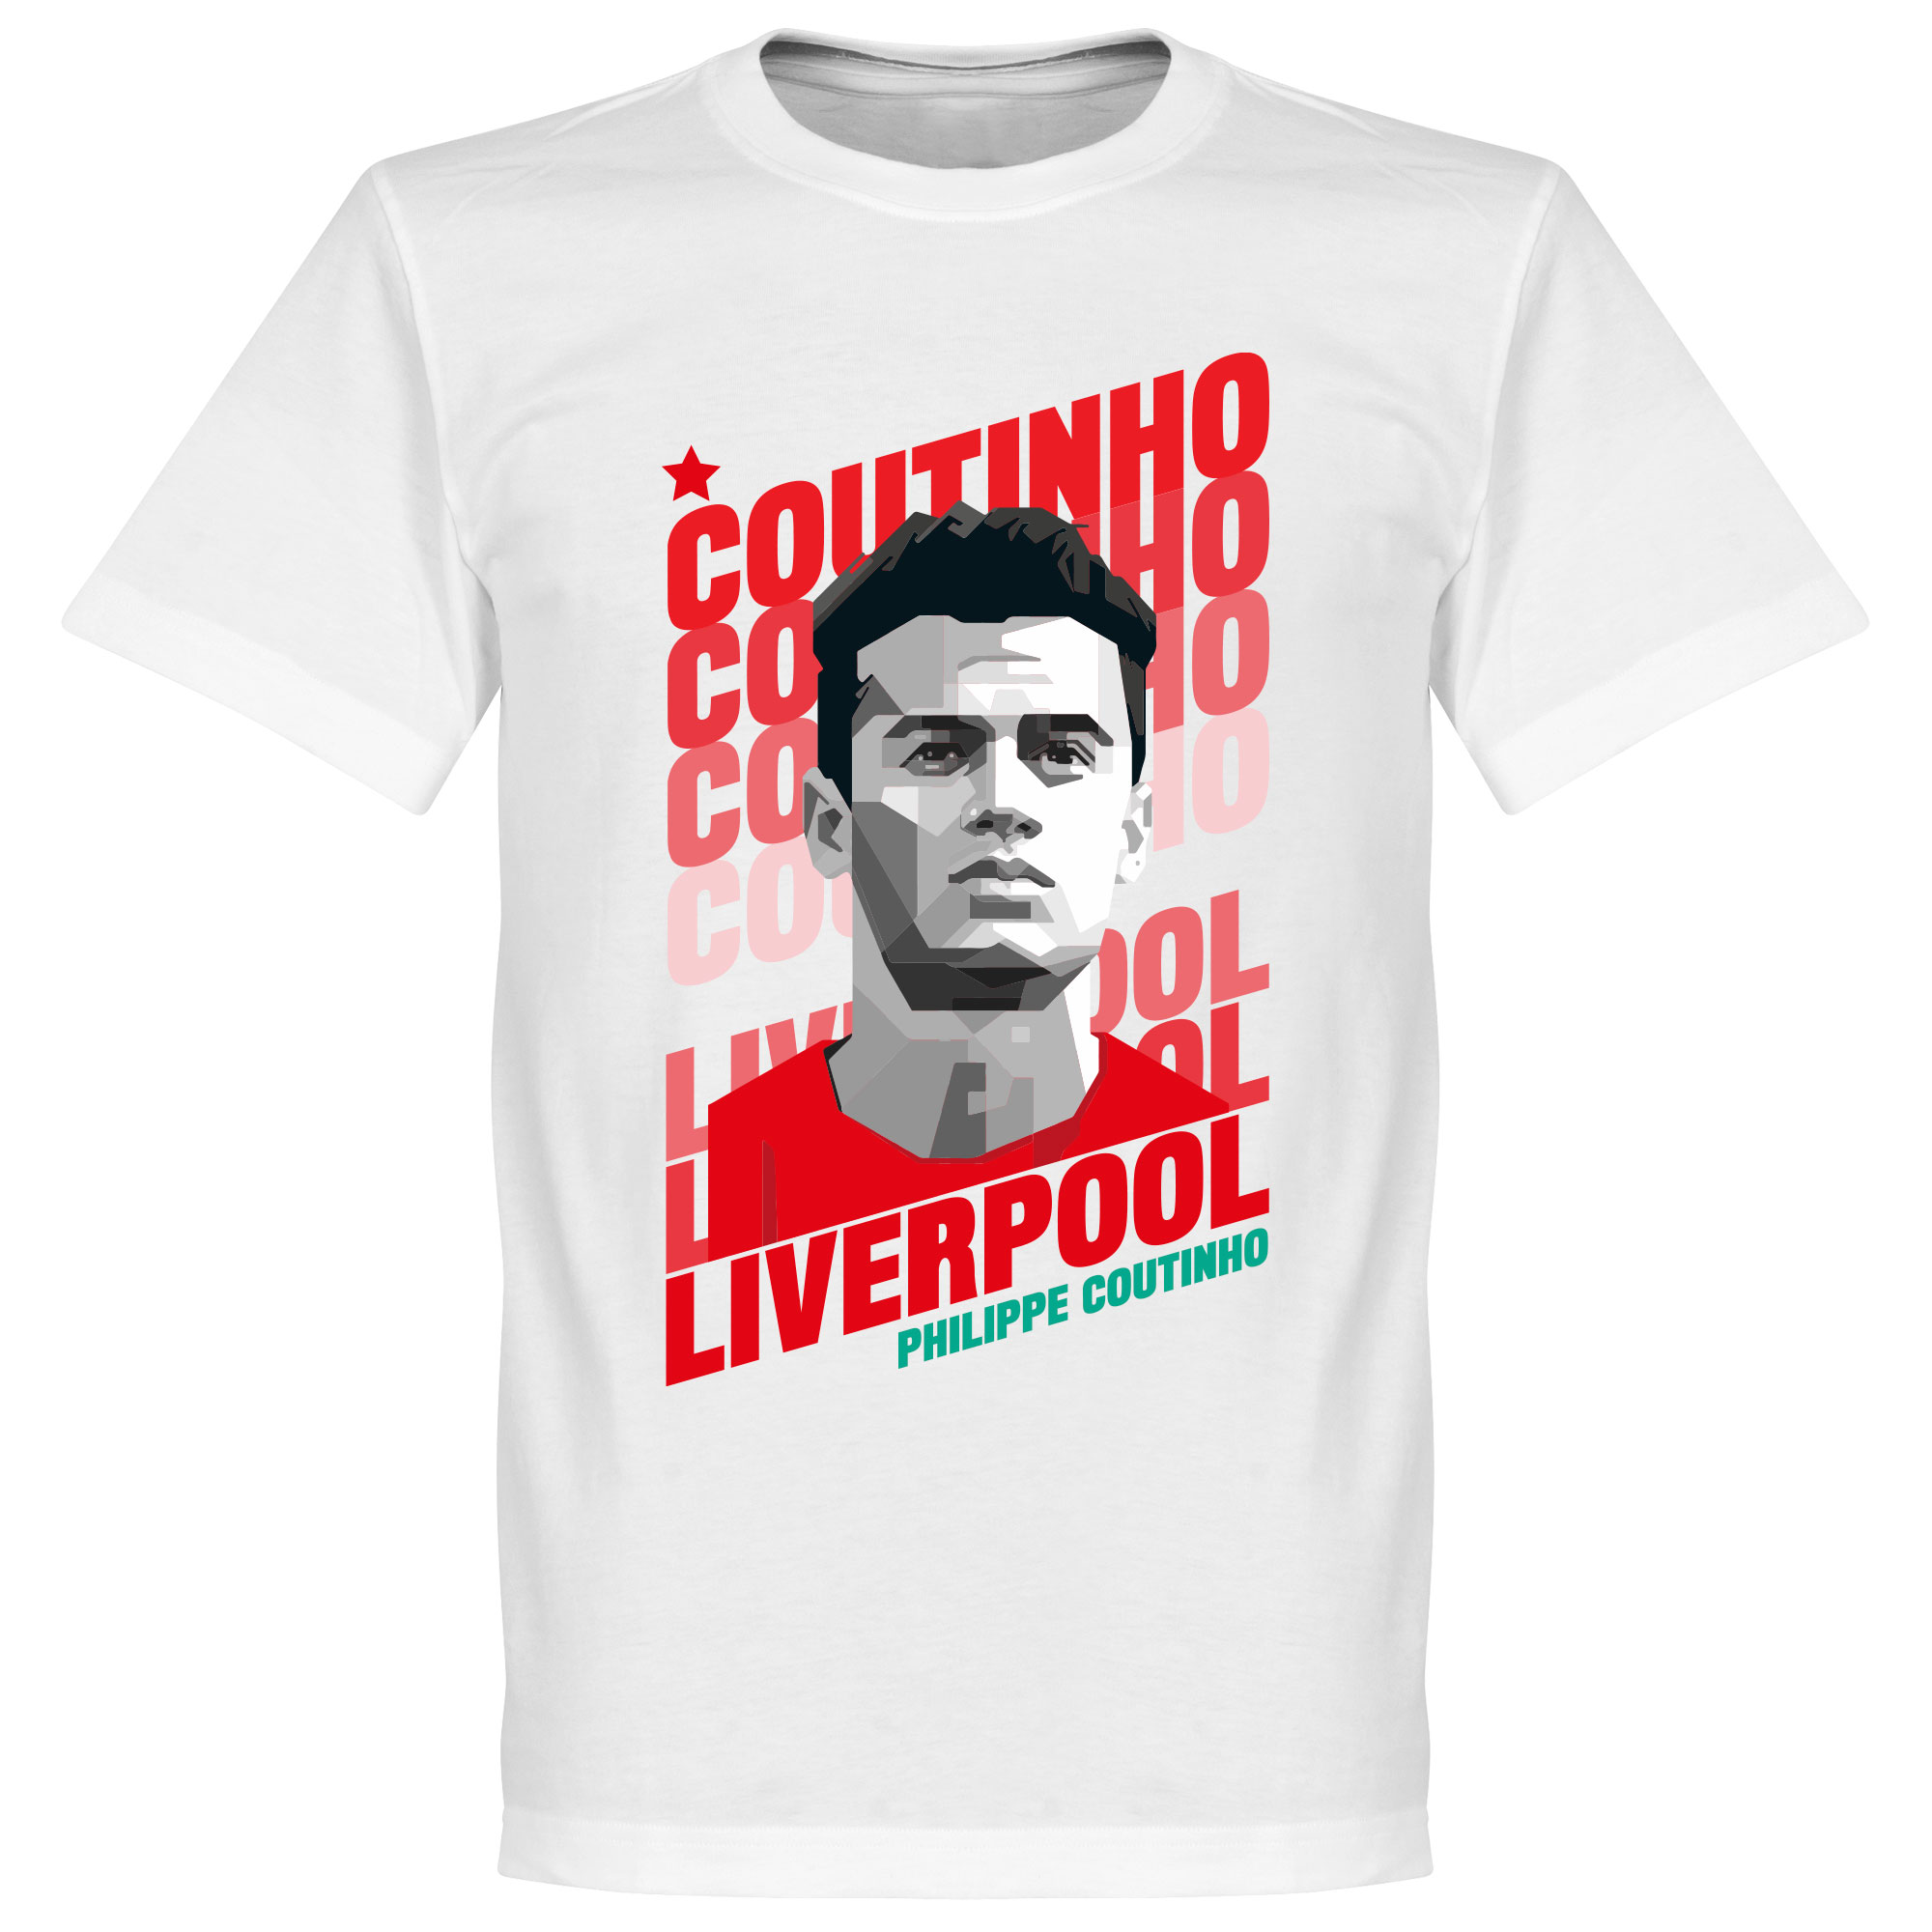 Coutinho Liverpool Portrait Tee - White - XL